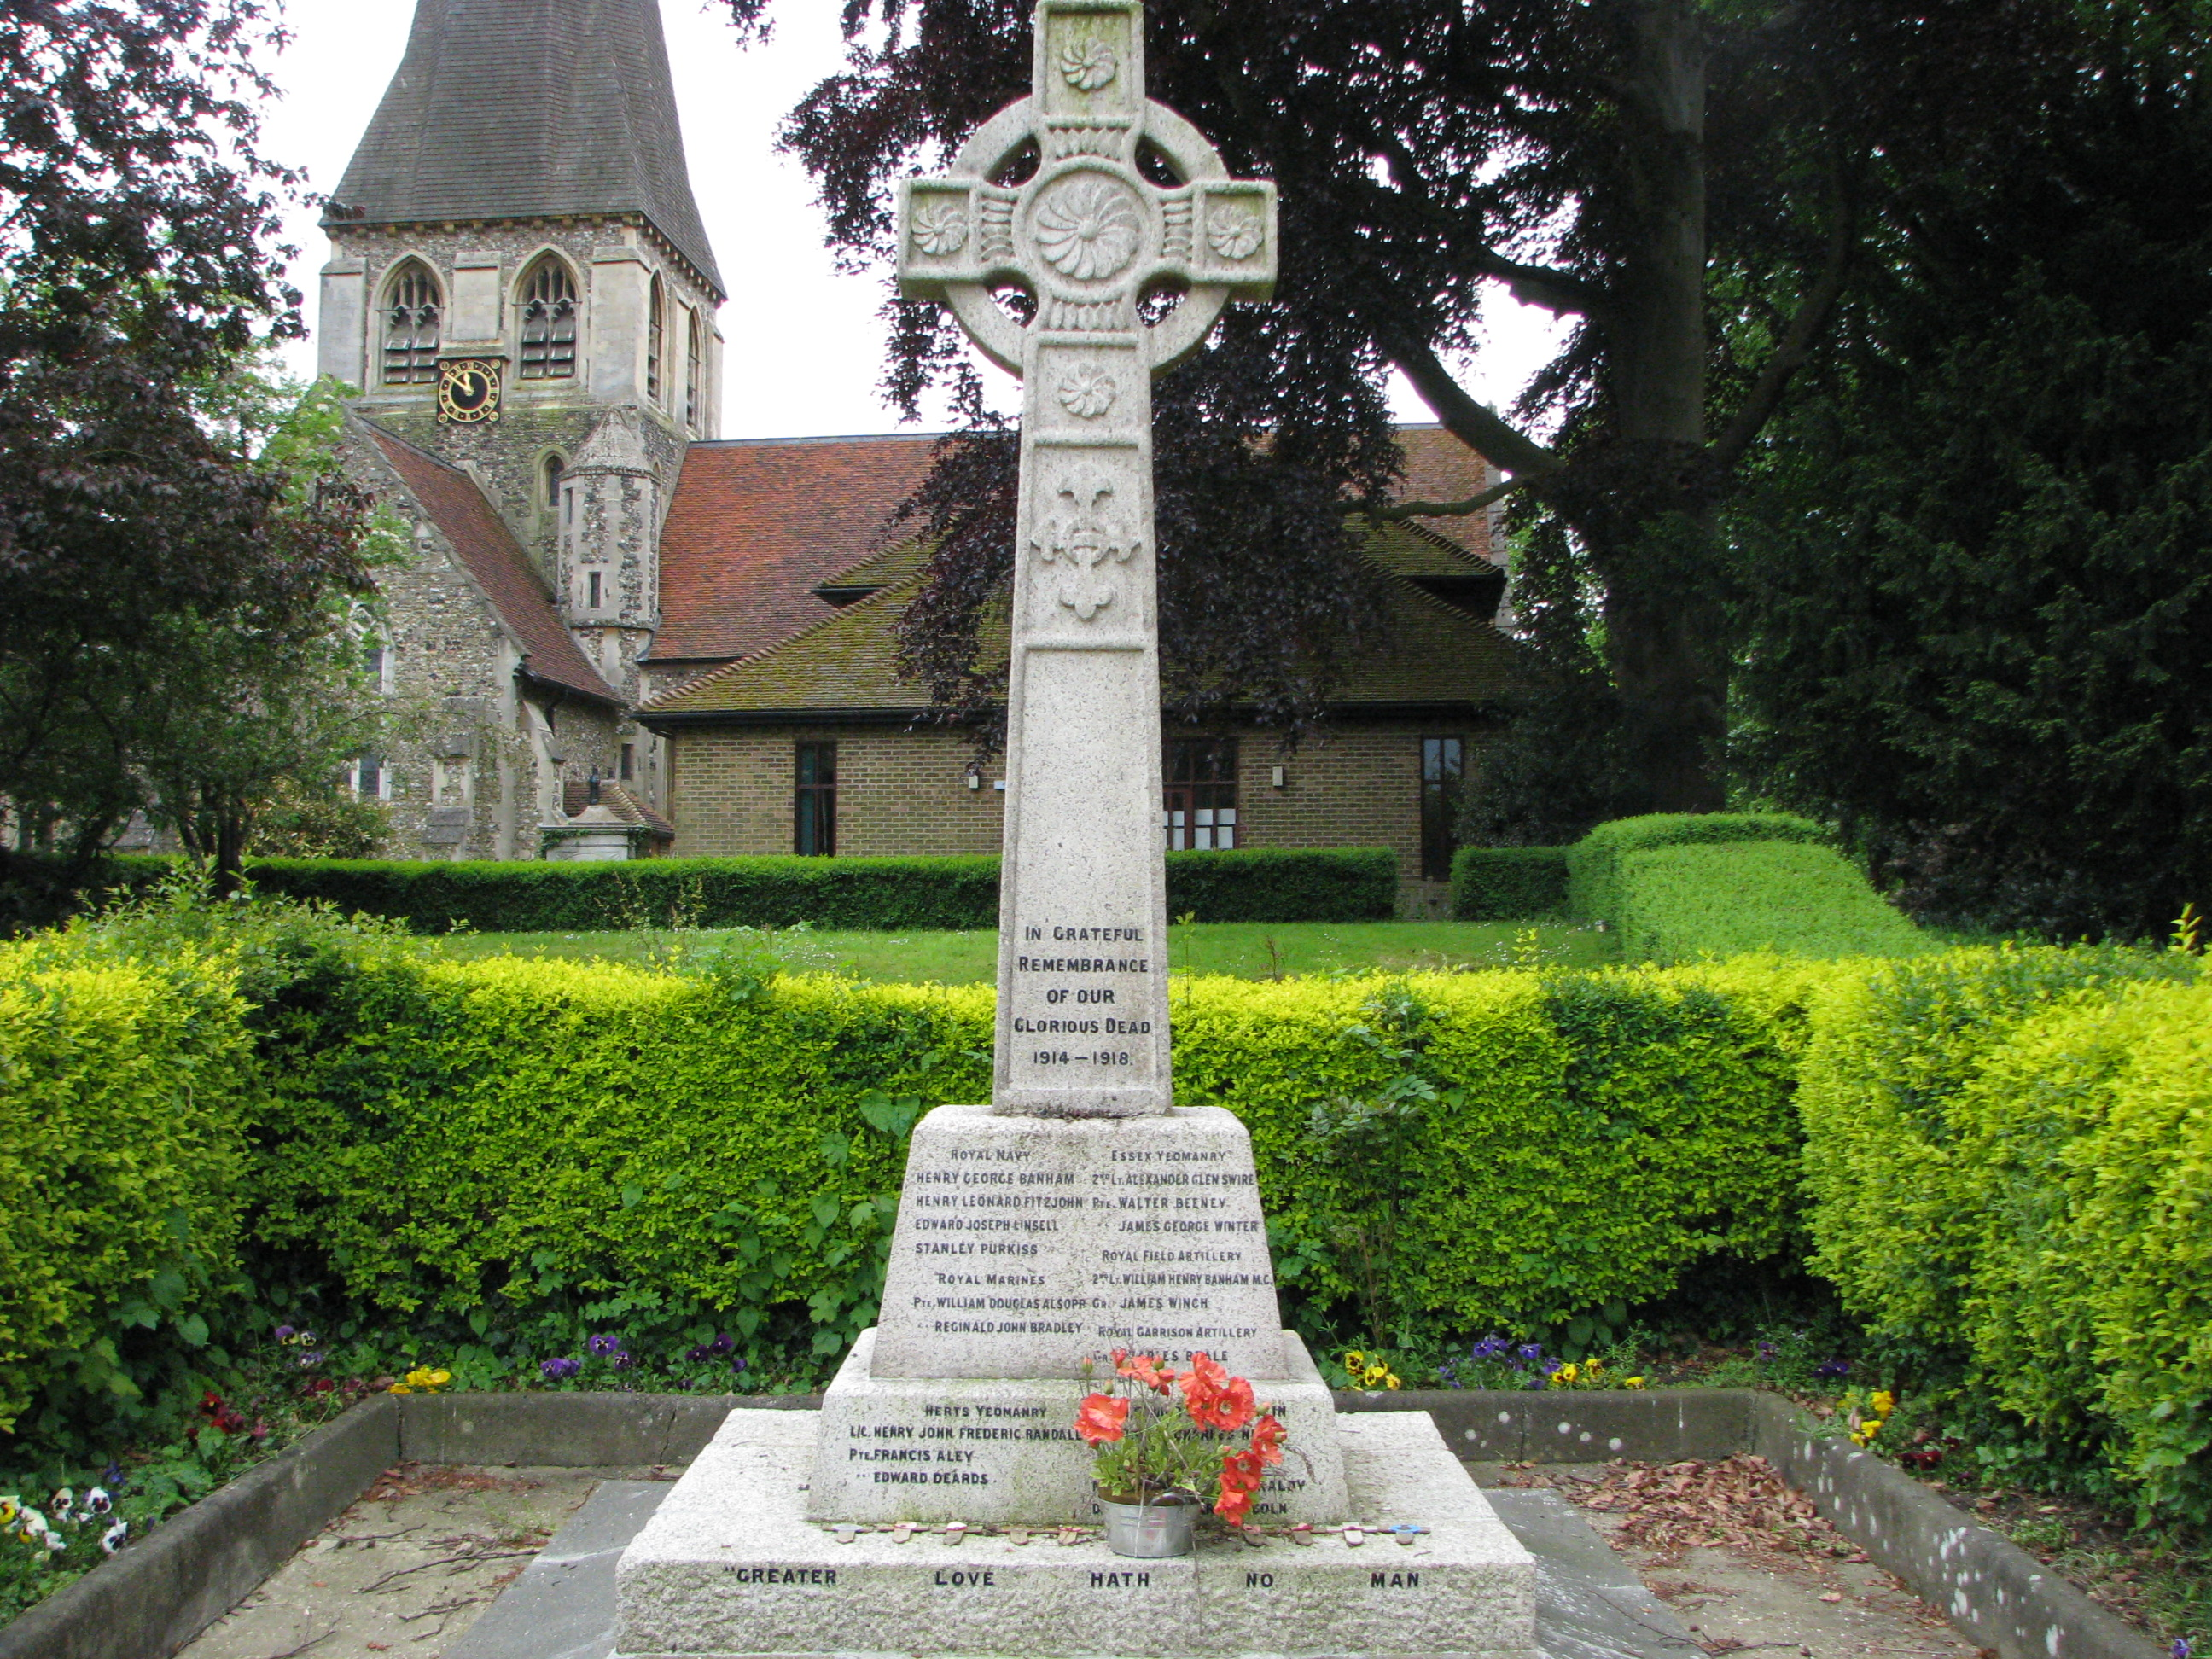 St Mary's Church Churchgate Street Harlow Memorial